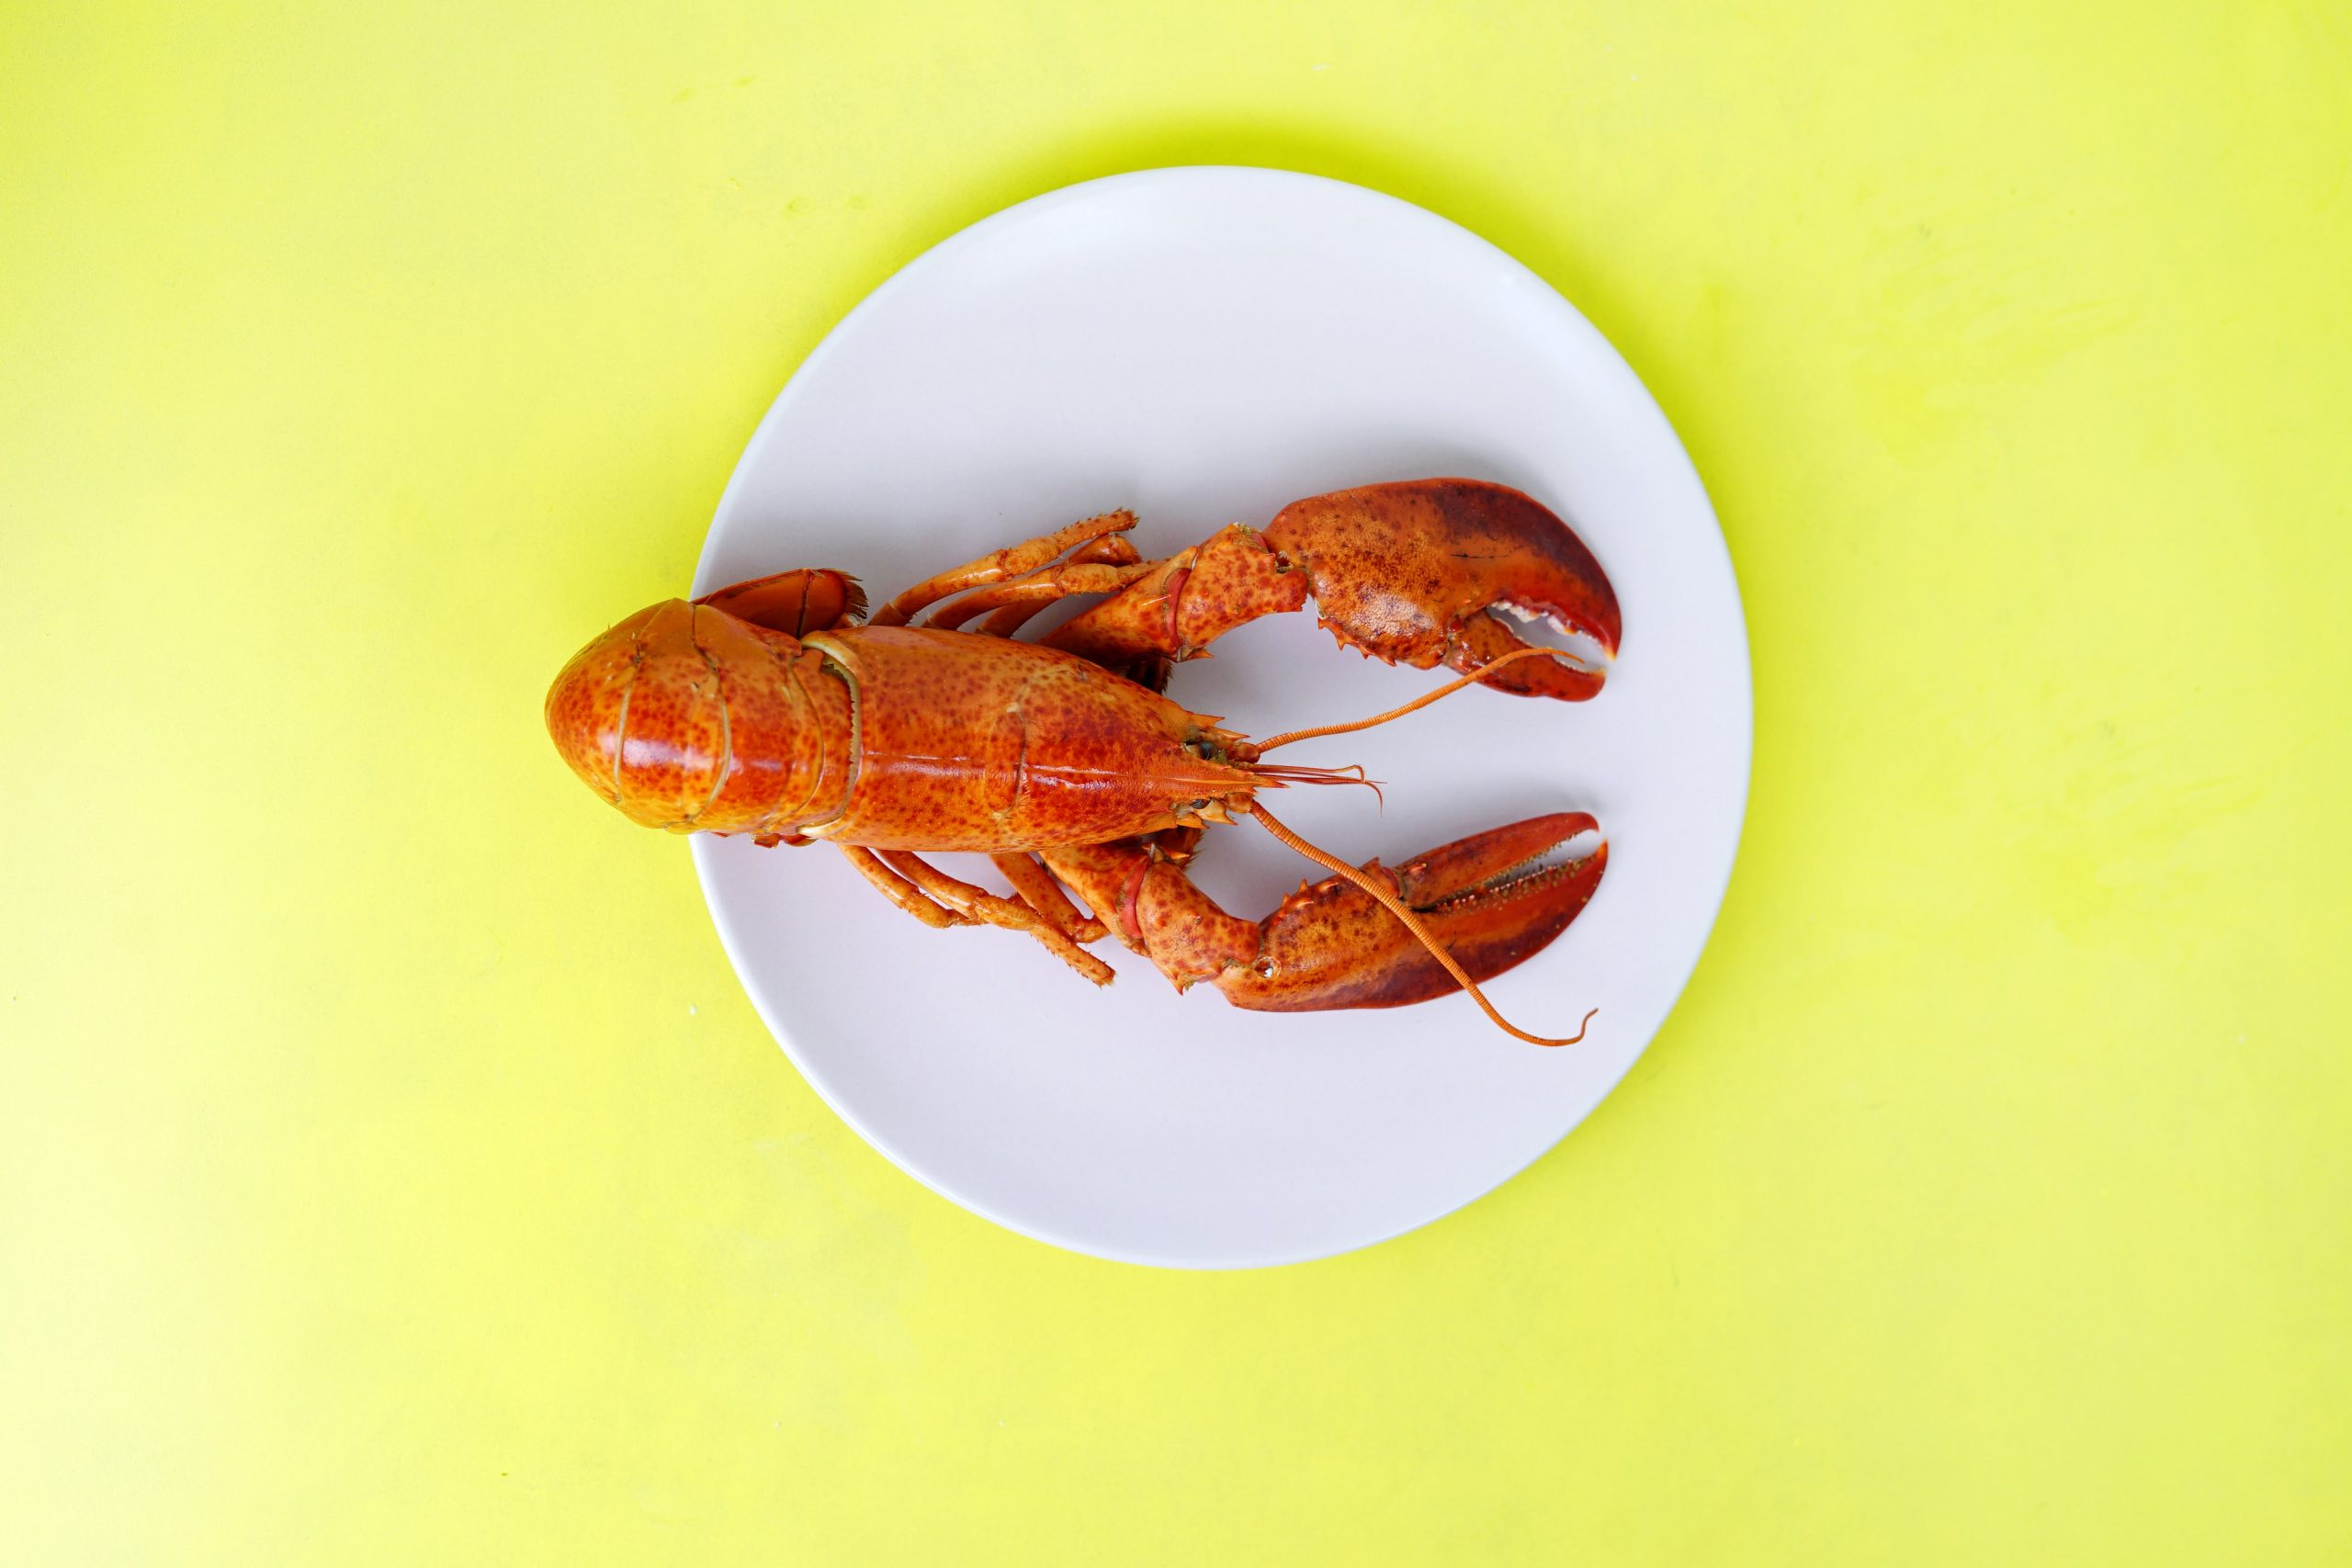 A red lobster on a white plate against a yellow background